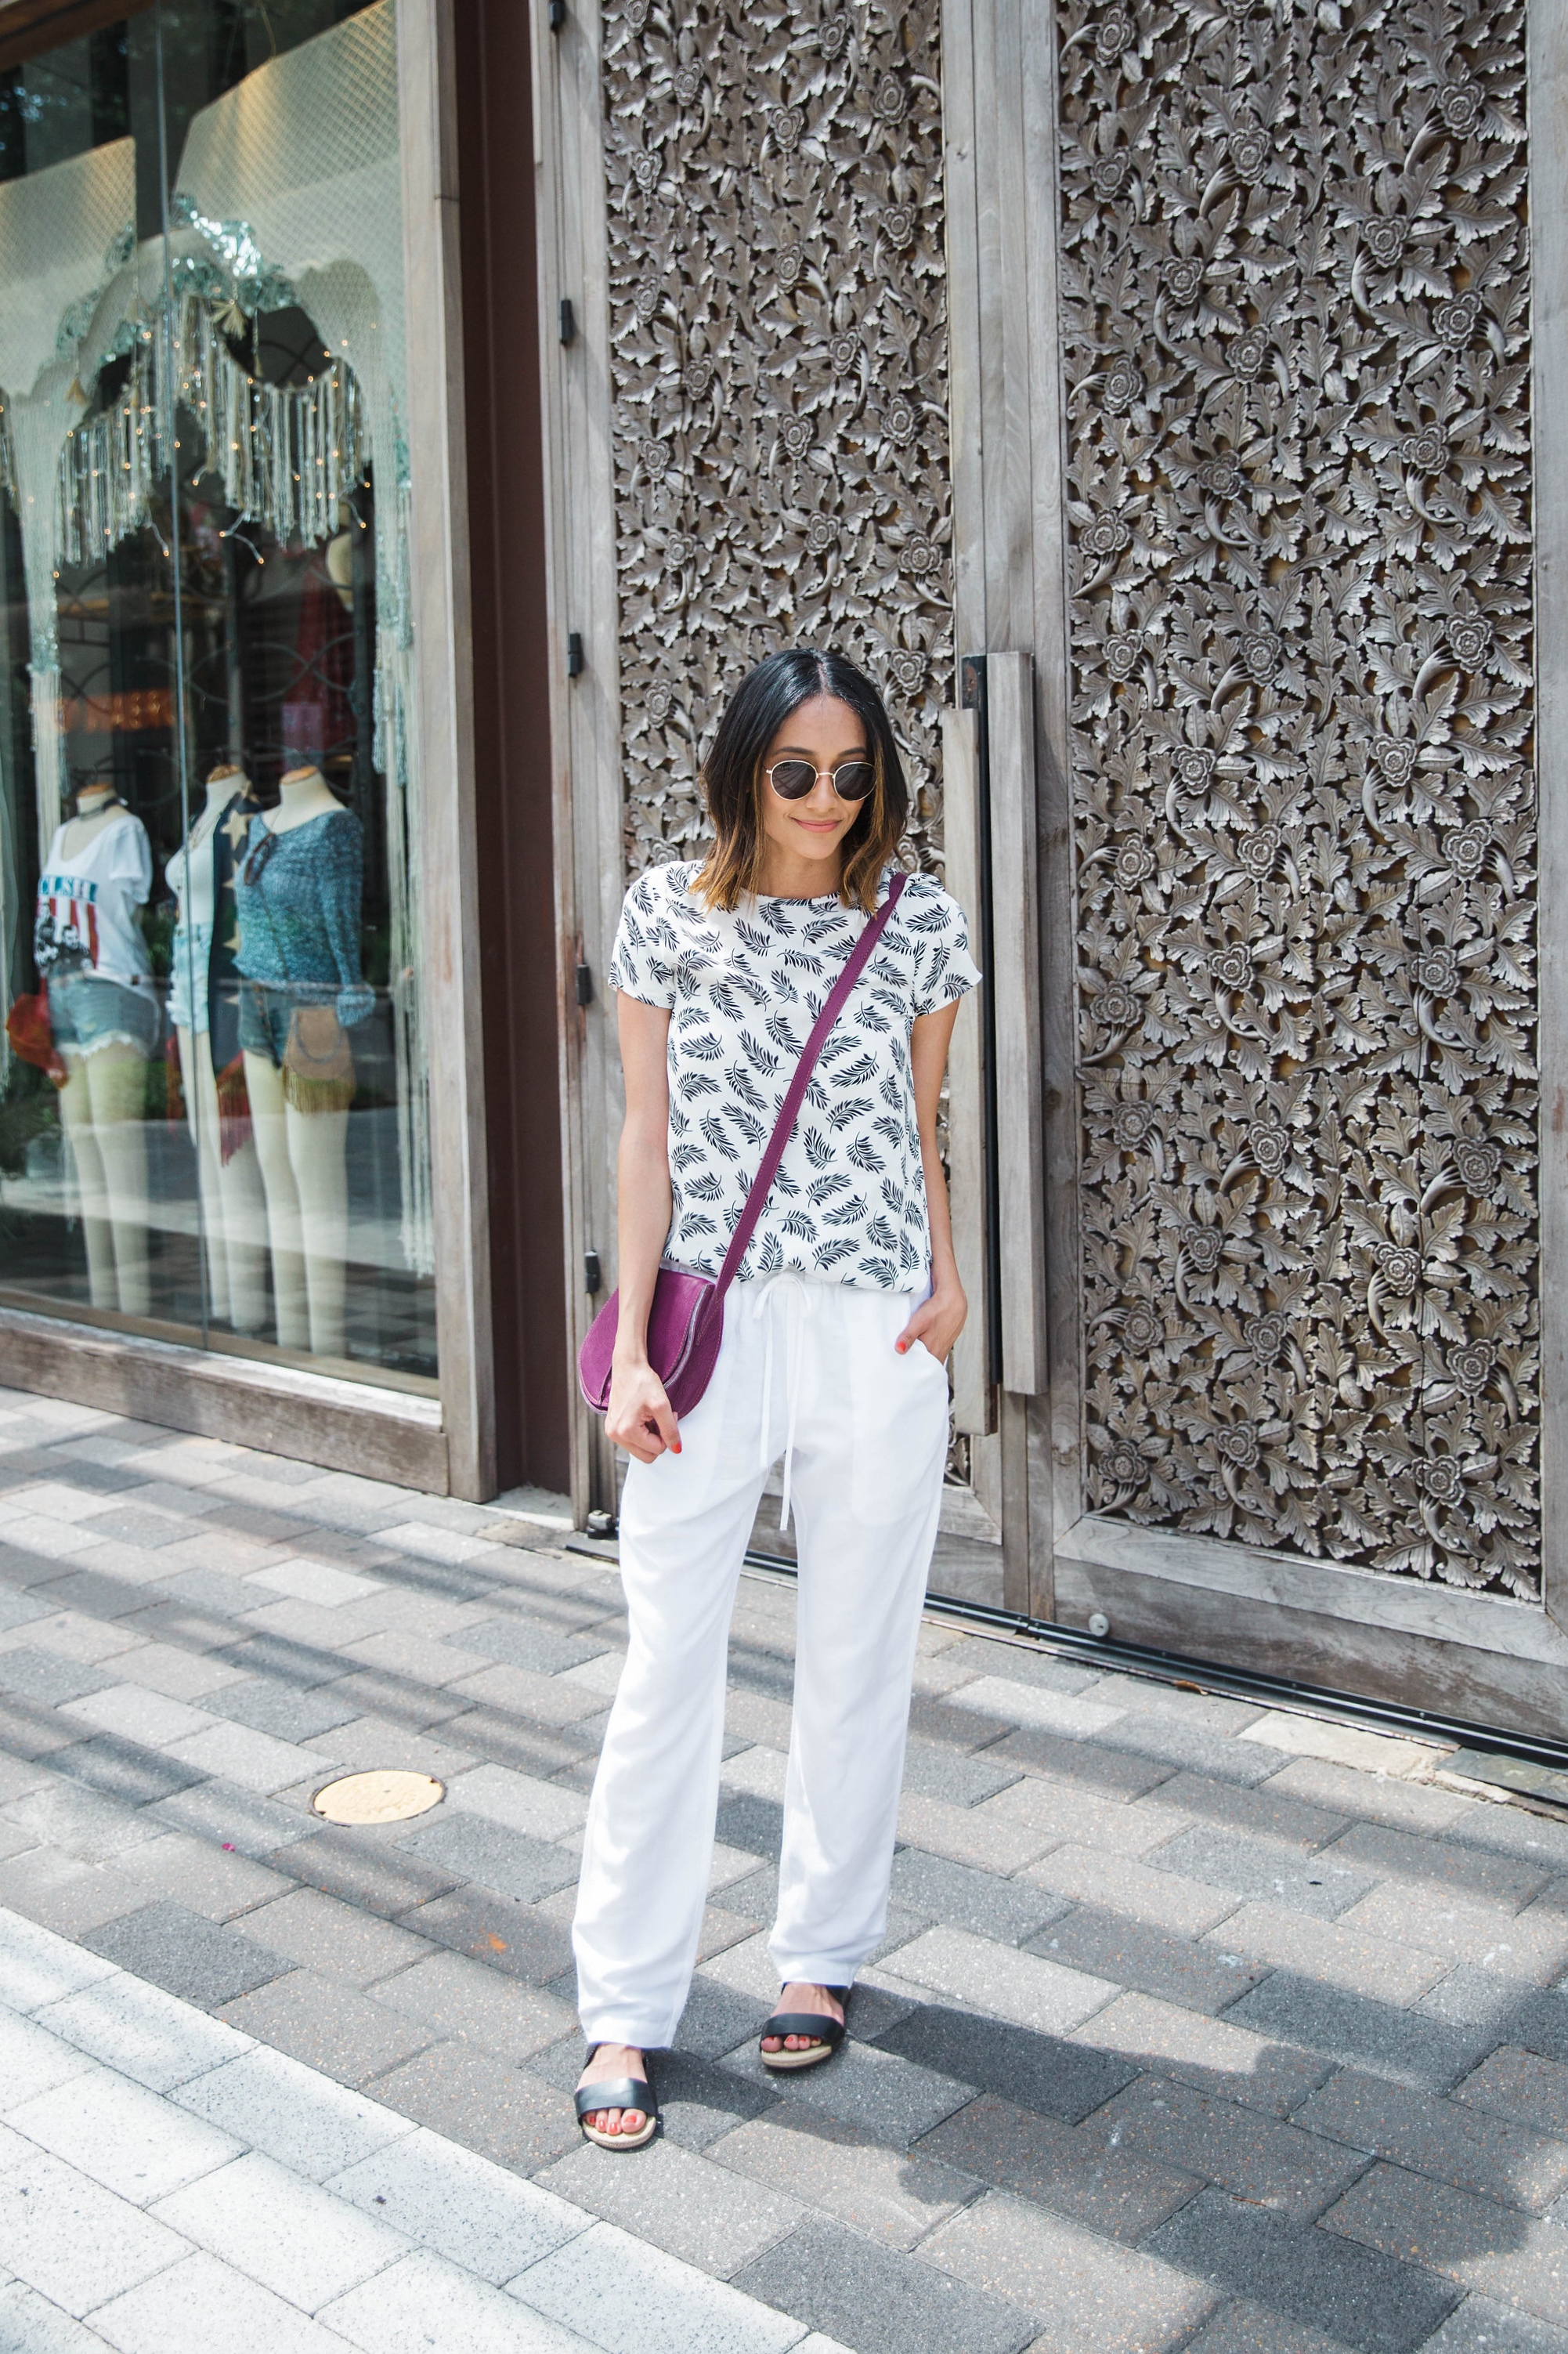 Rocking Summer Whites With A Pop Of Color | White Pants | Saddlebag | Summer Look